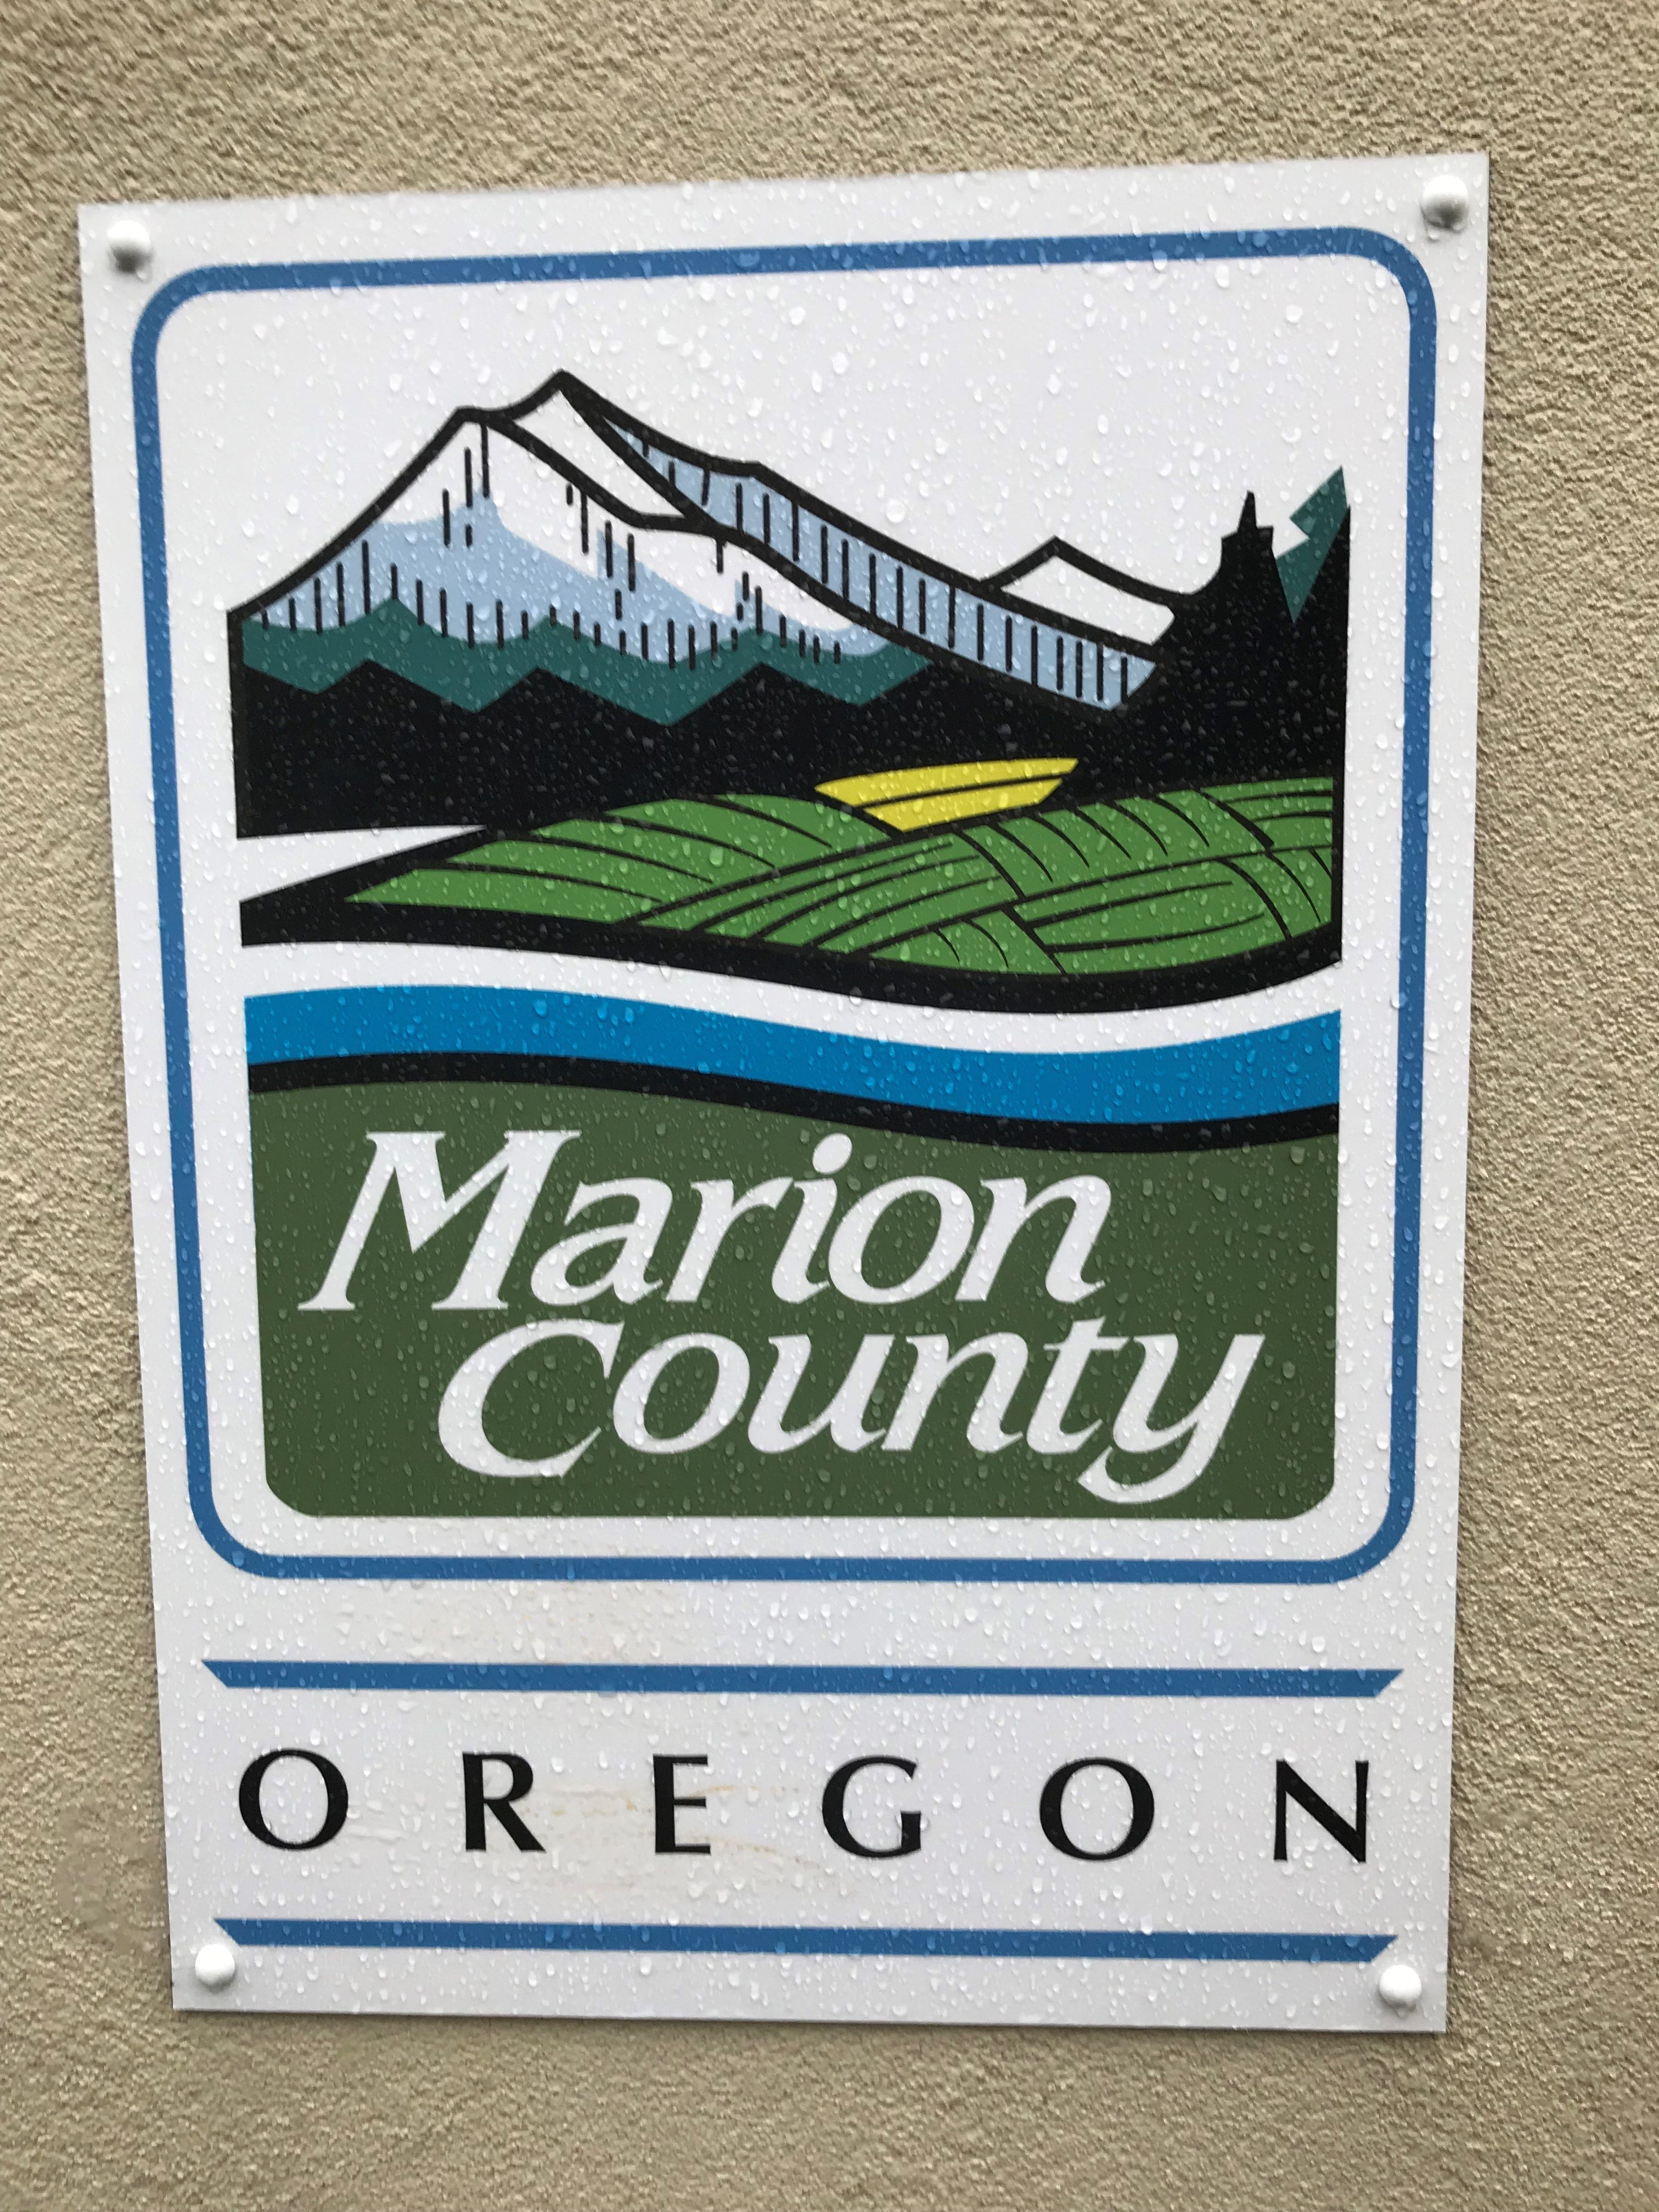 Outbreak hits Marion County department tasked with tracking COVID-19